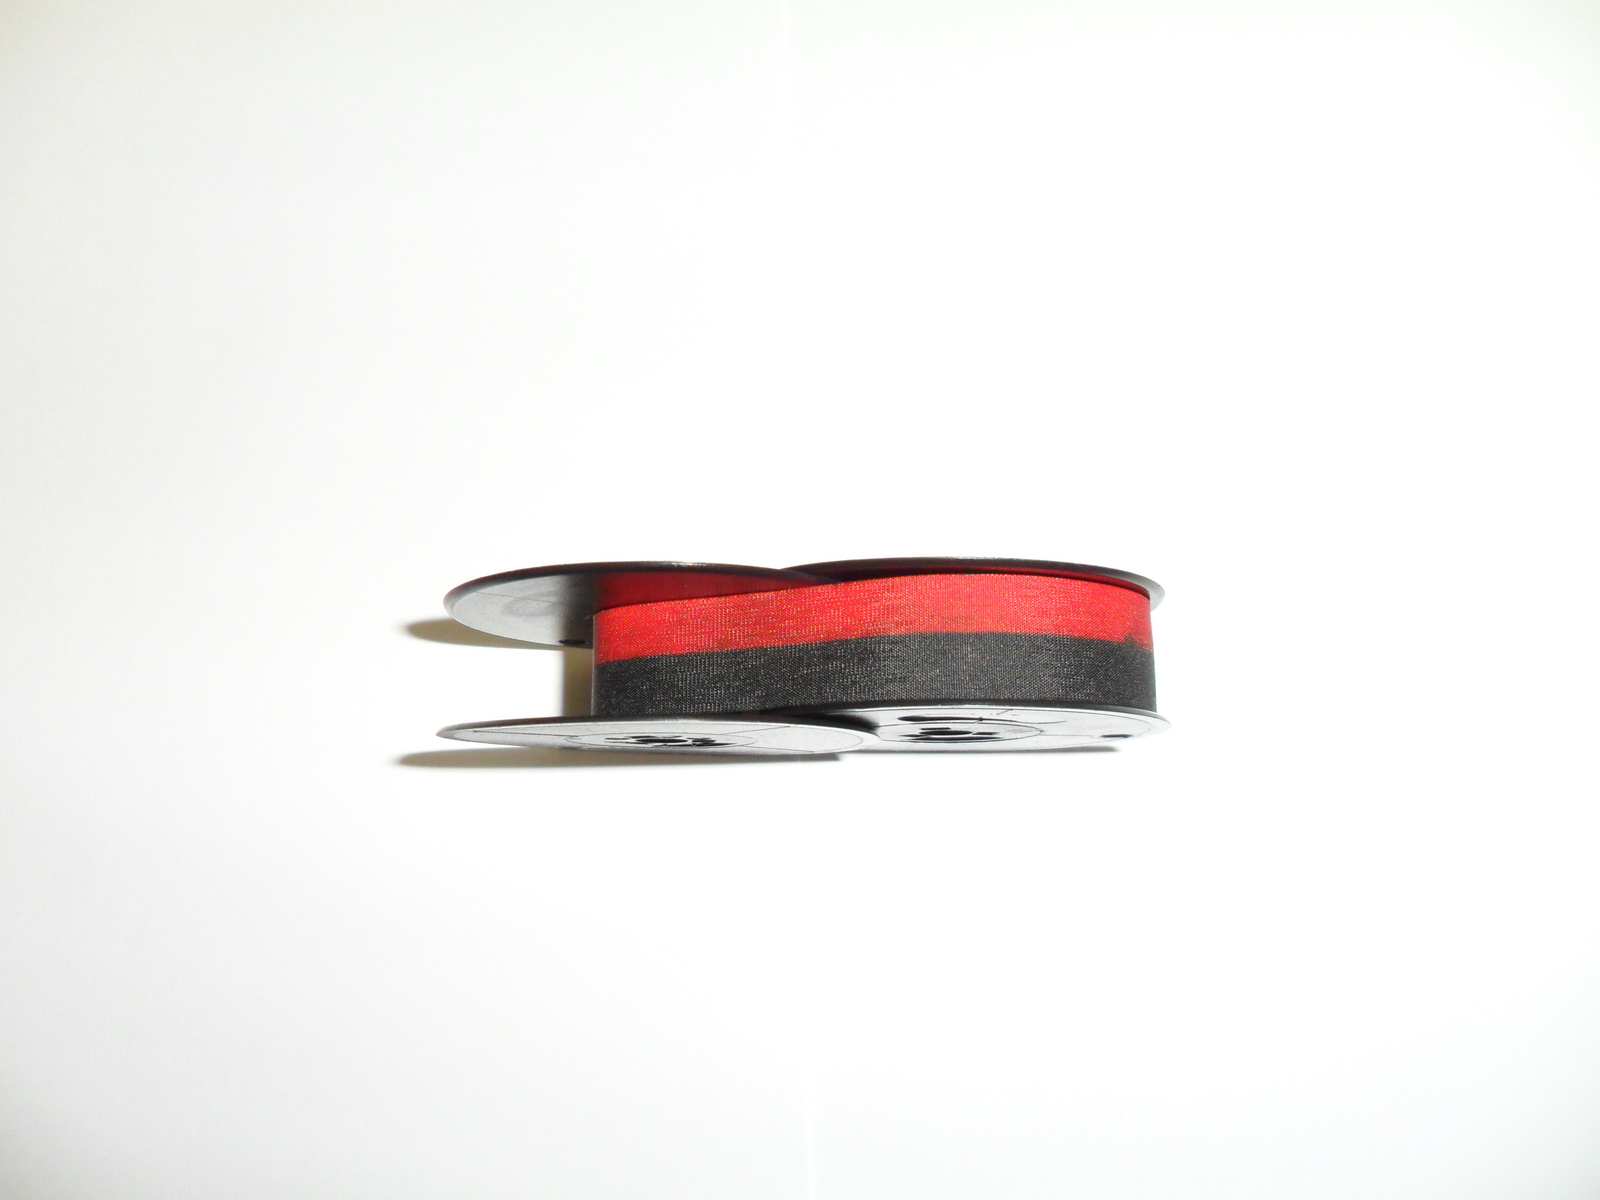 Primary image for Brother Valiant Typewriter Ribbon Black and Red Twin Spool